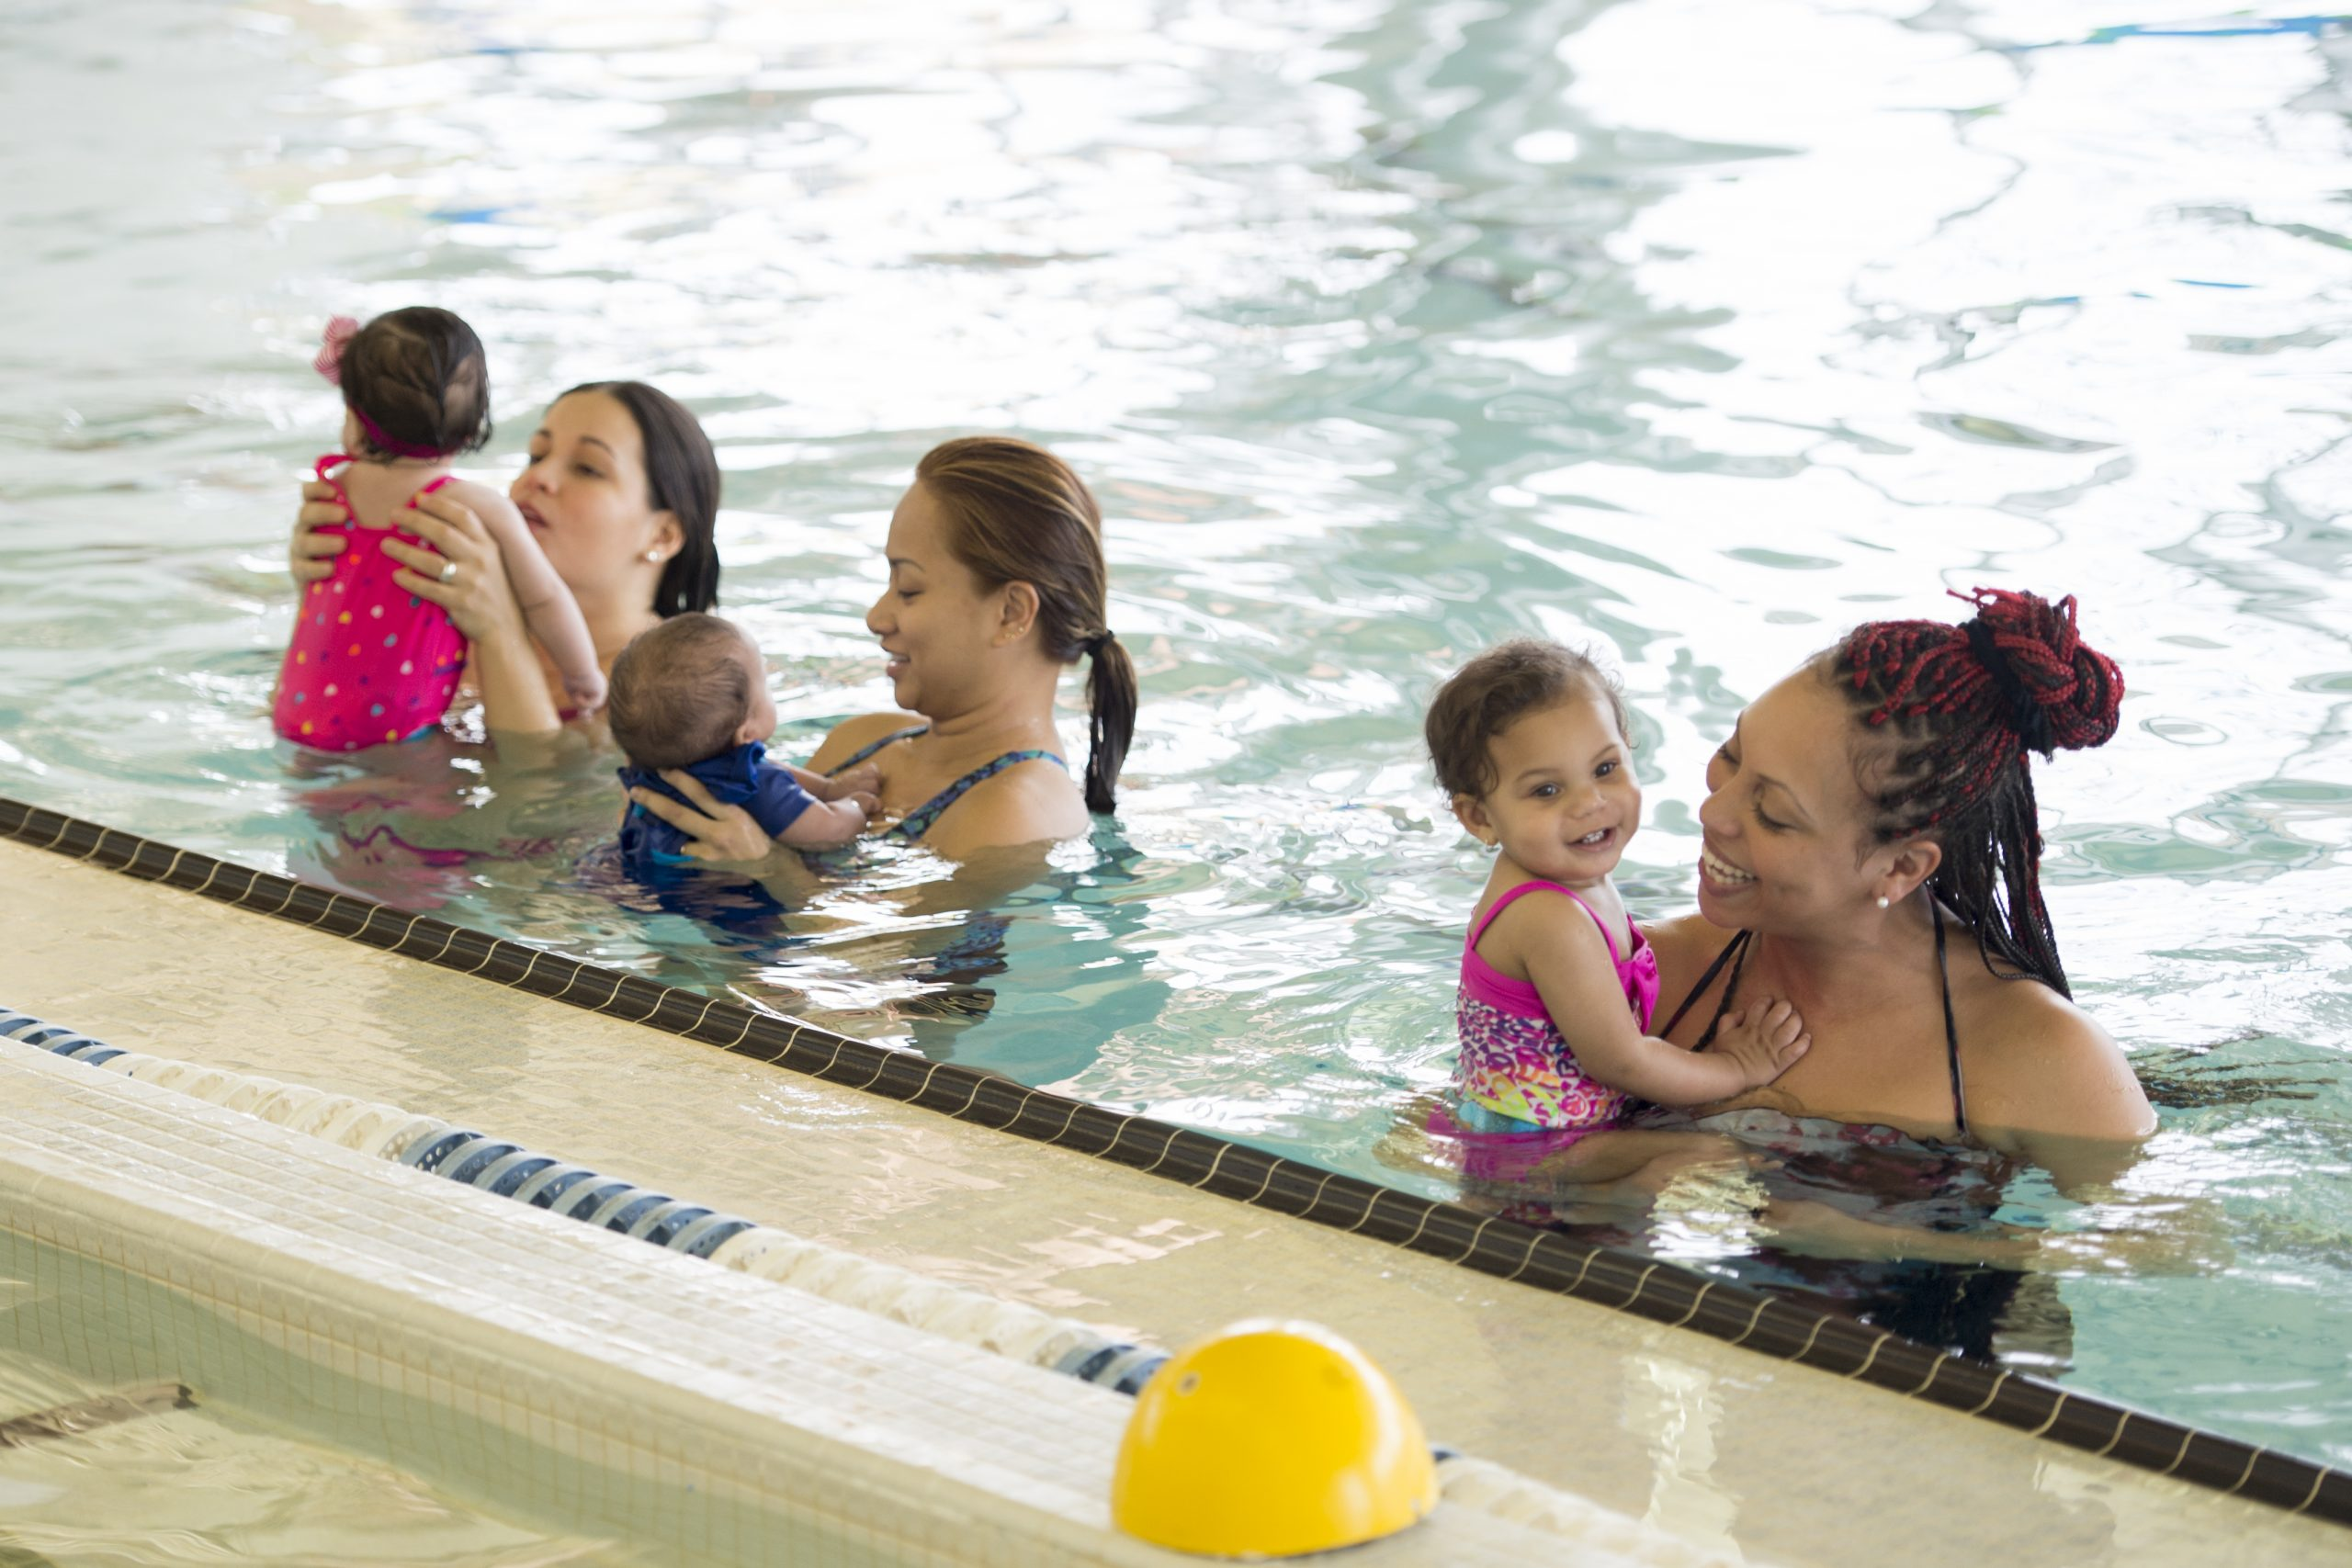 A group of mothers are at the pool and are introducing their young babies to the water at the pool. They are standing in a row and are holding their children.